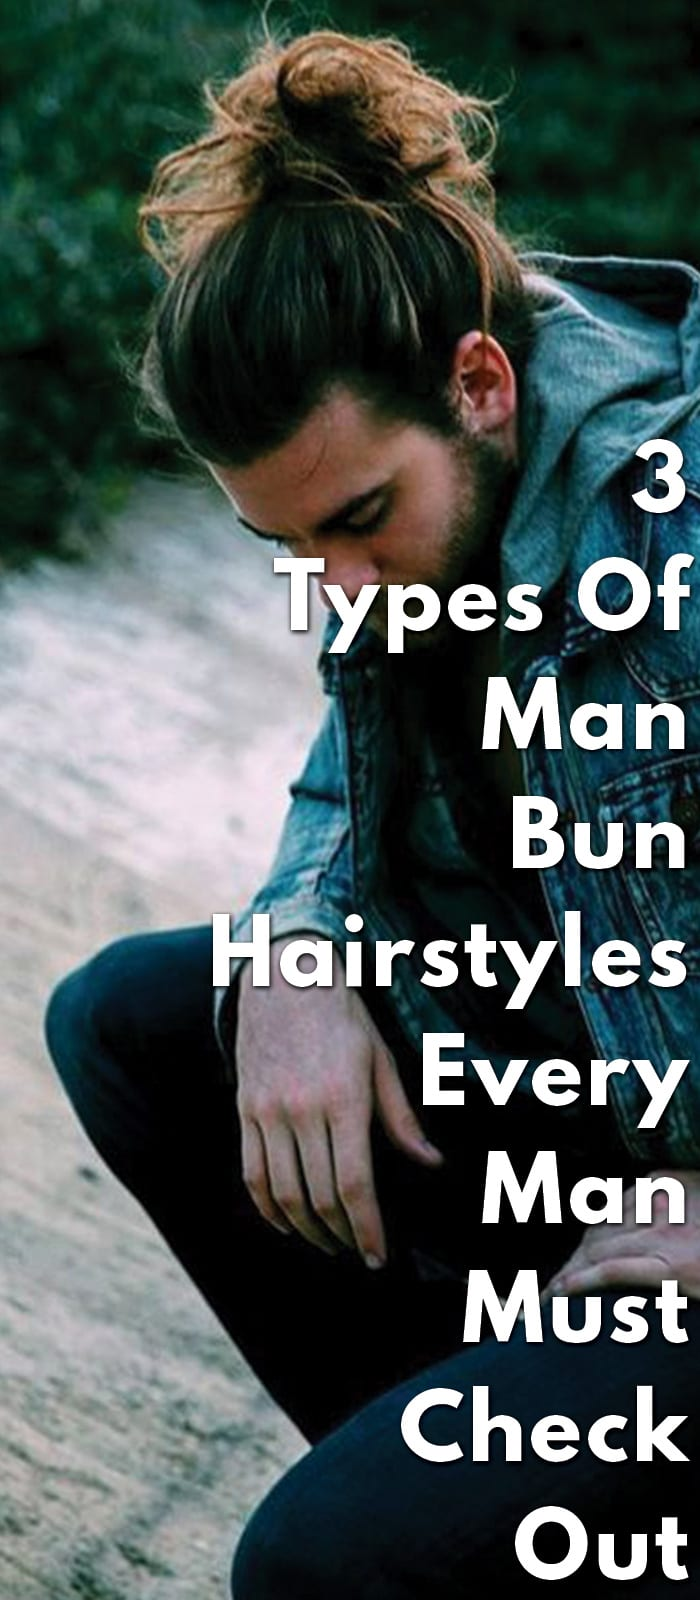 3-Types-Of-Man-Bun-Hairstyles-Every-Man-Must-Check-Out